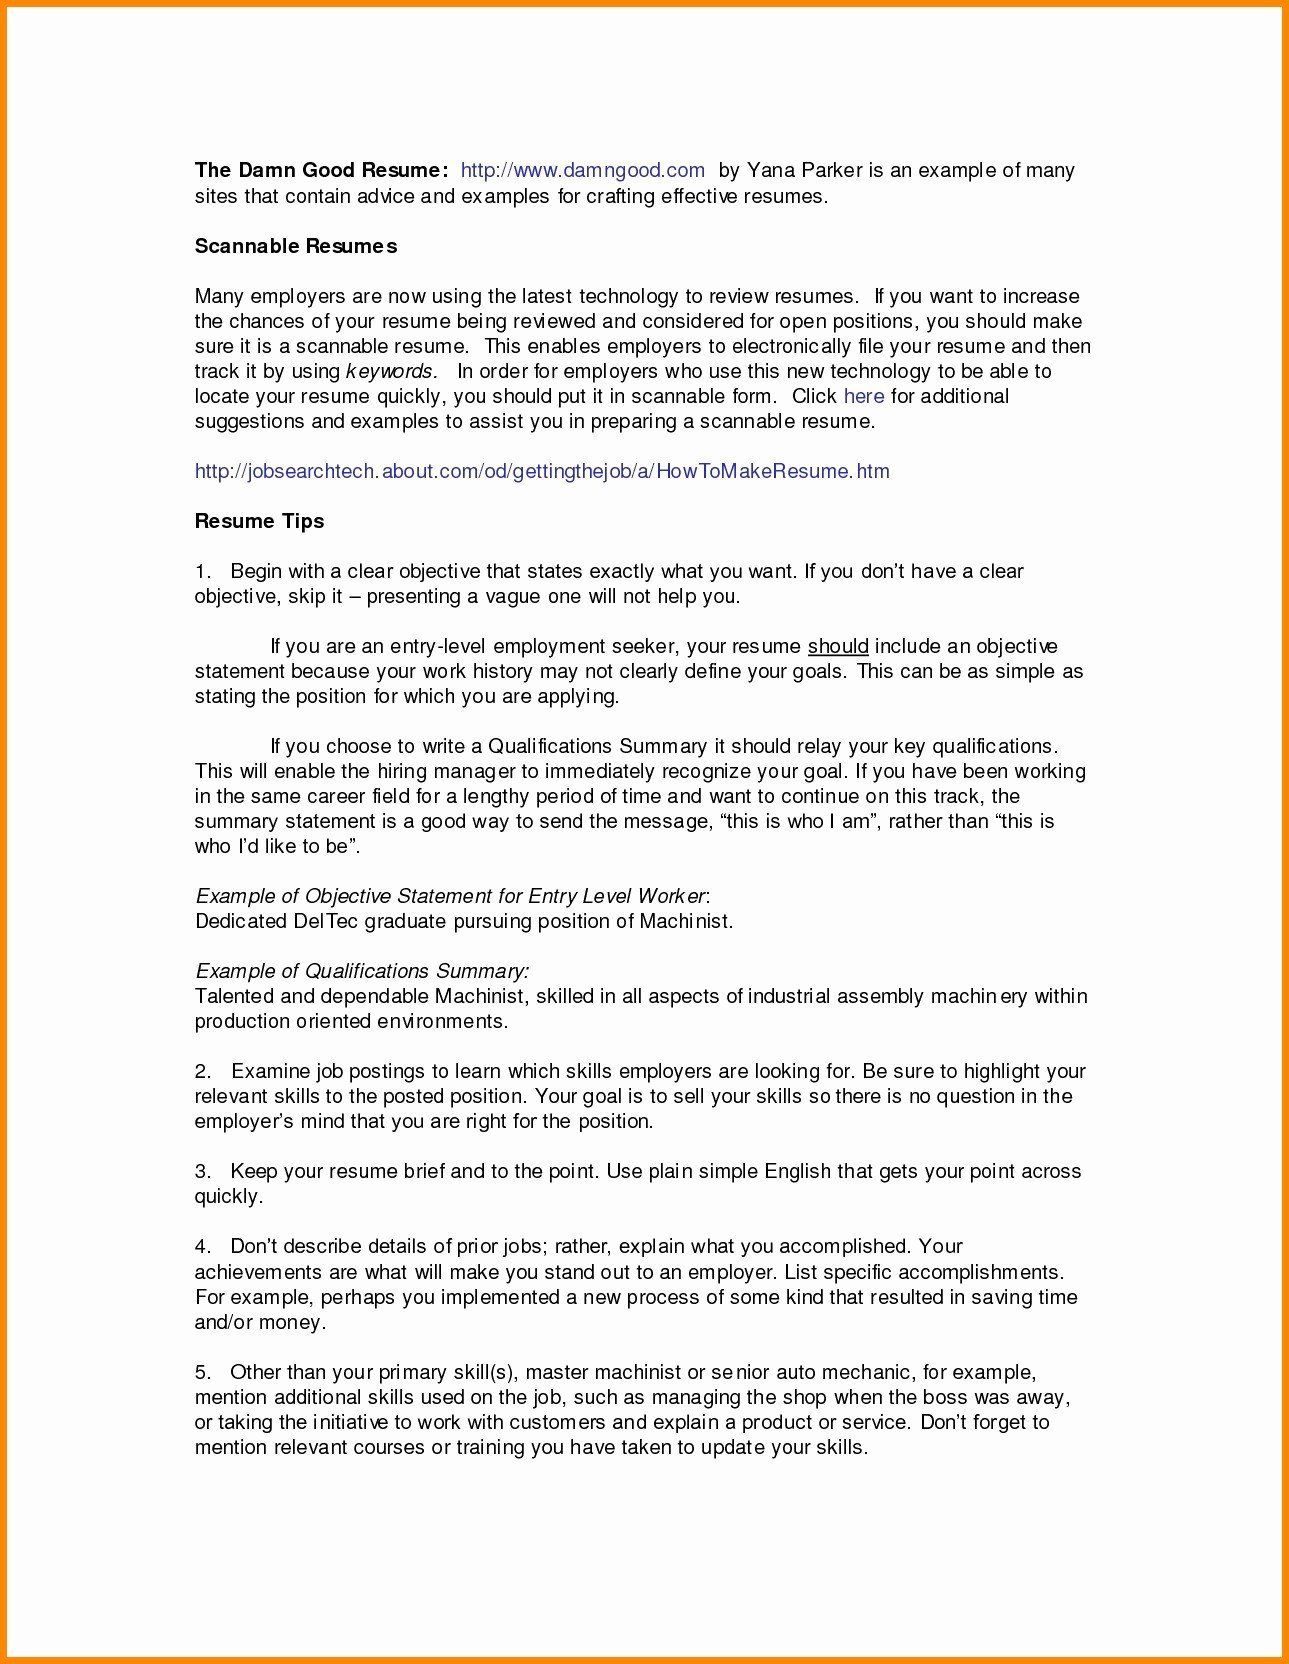 social media manager resume unique best munity in objective examples project police Resume Social Media Manager Resume Objective